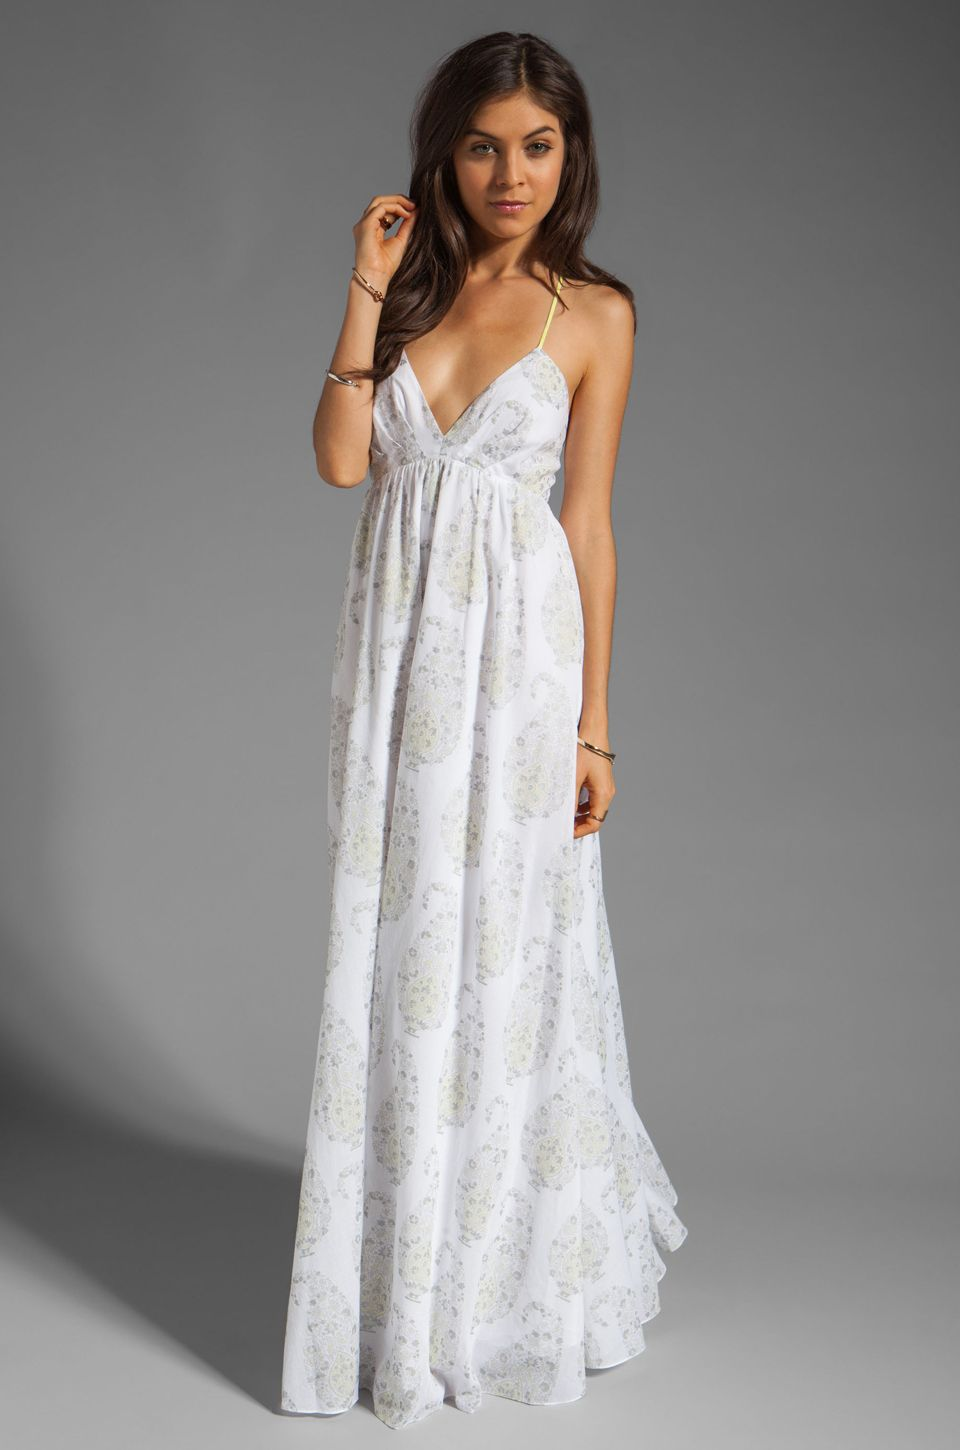 Rebecca Taylor Voile Gown in White | REVOLVE | Summer Closet (80 ...